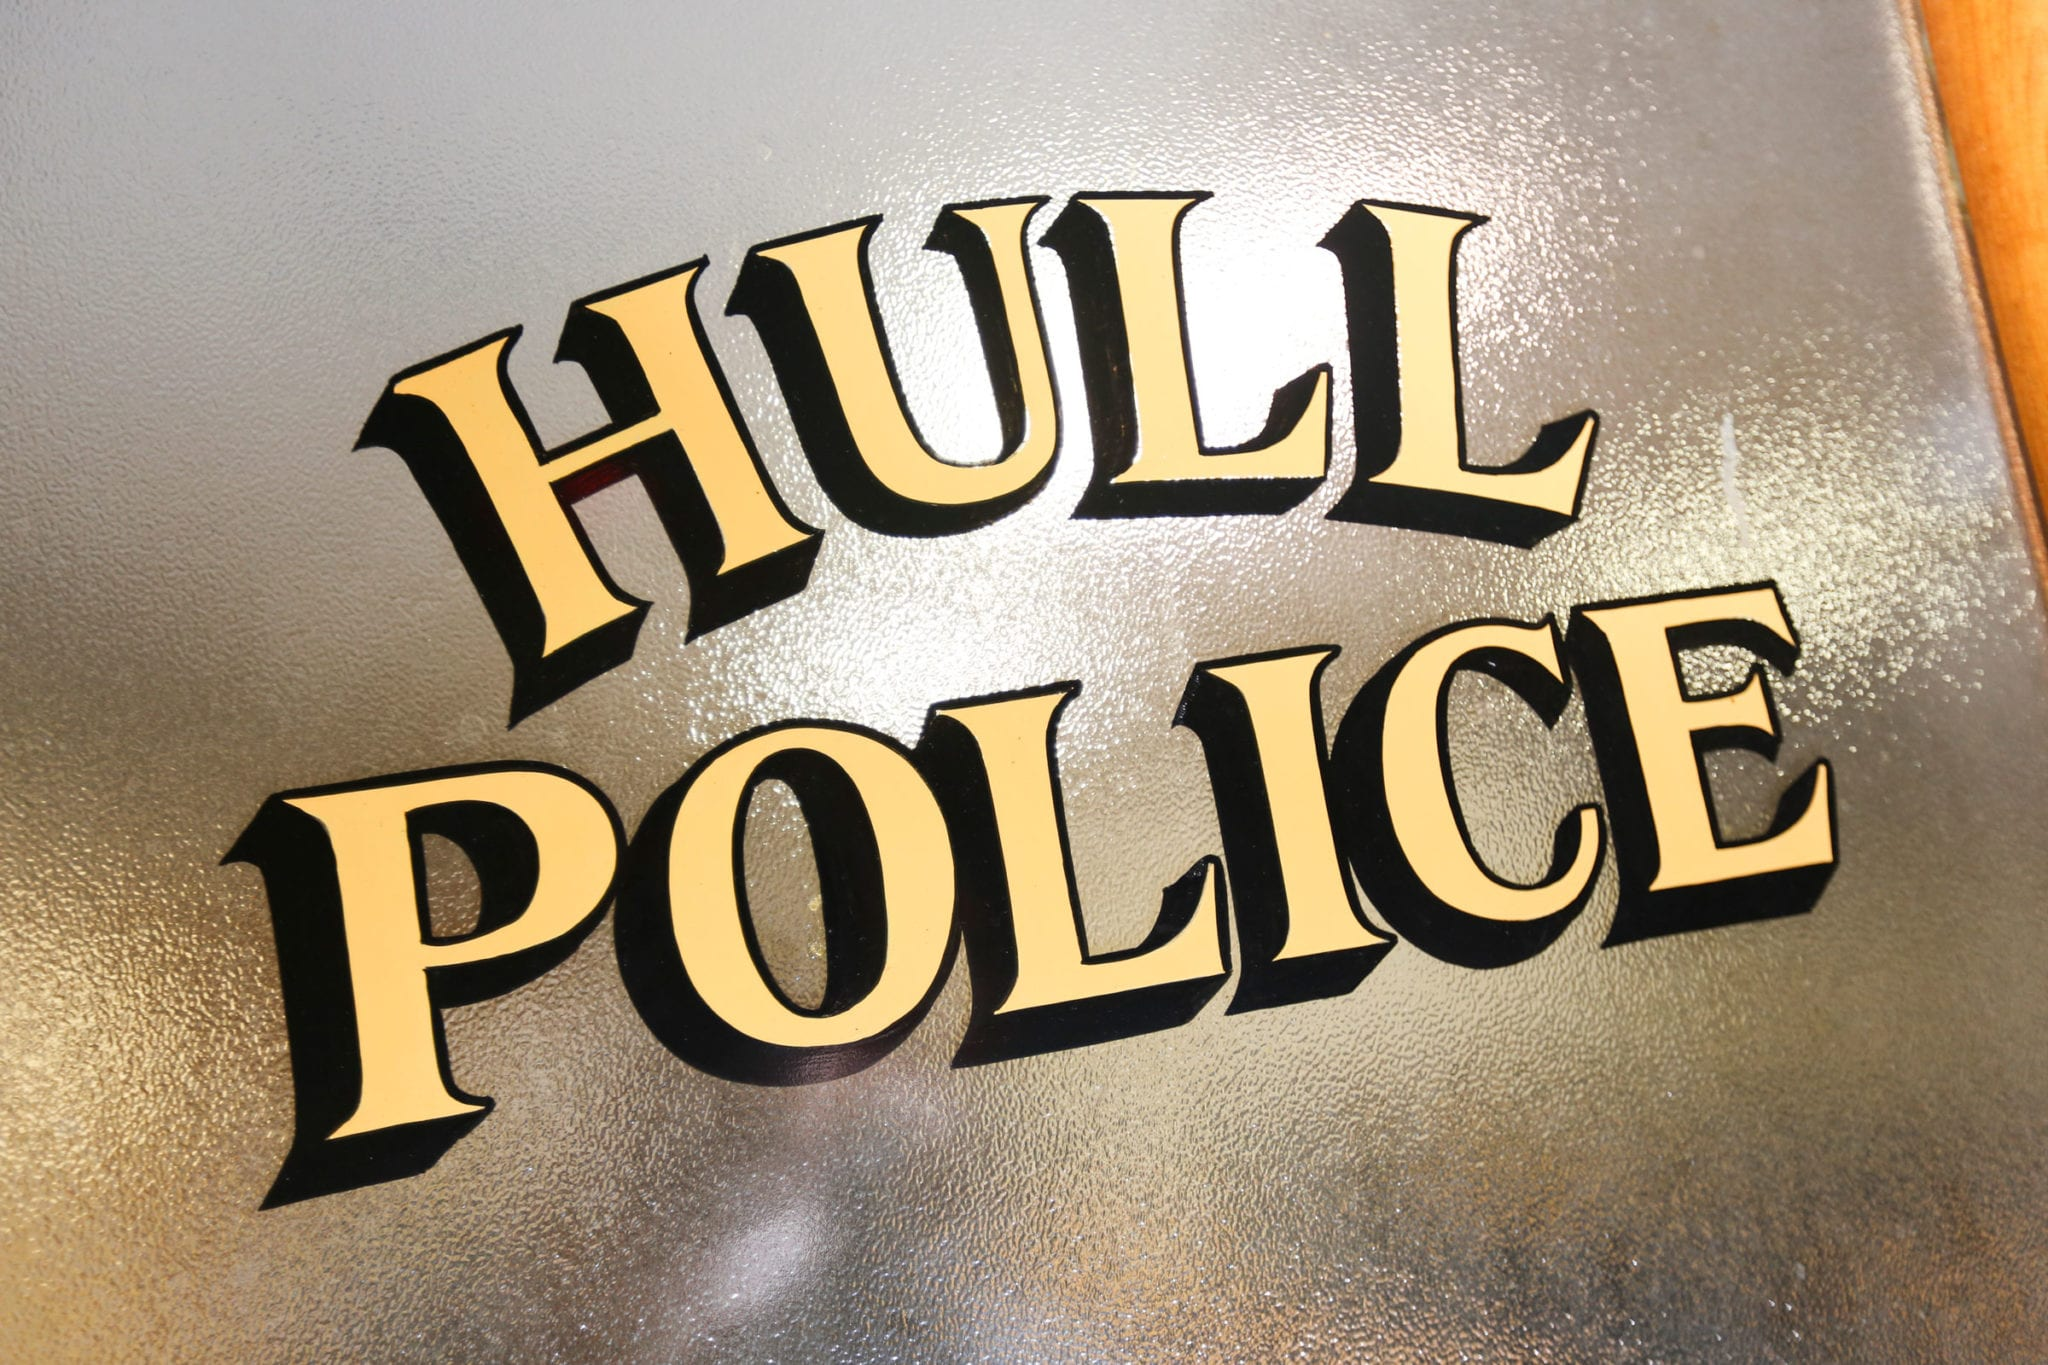 Domestic Violence - Hull Police Department